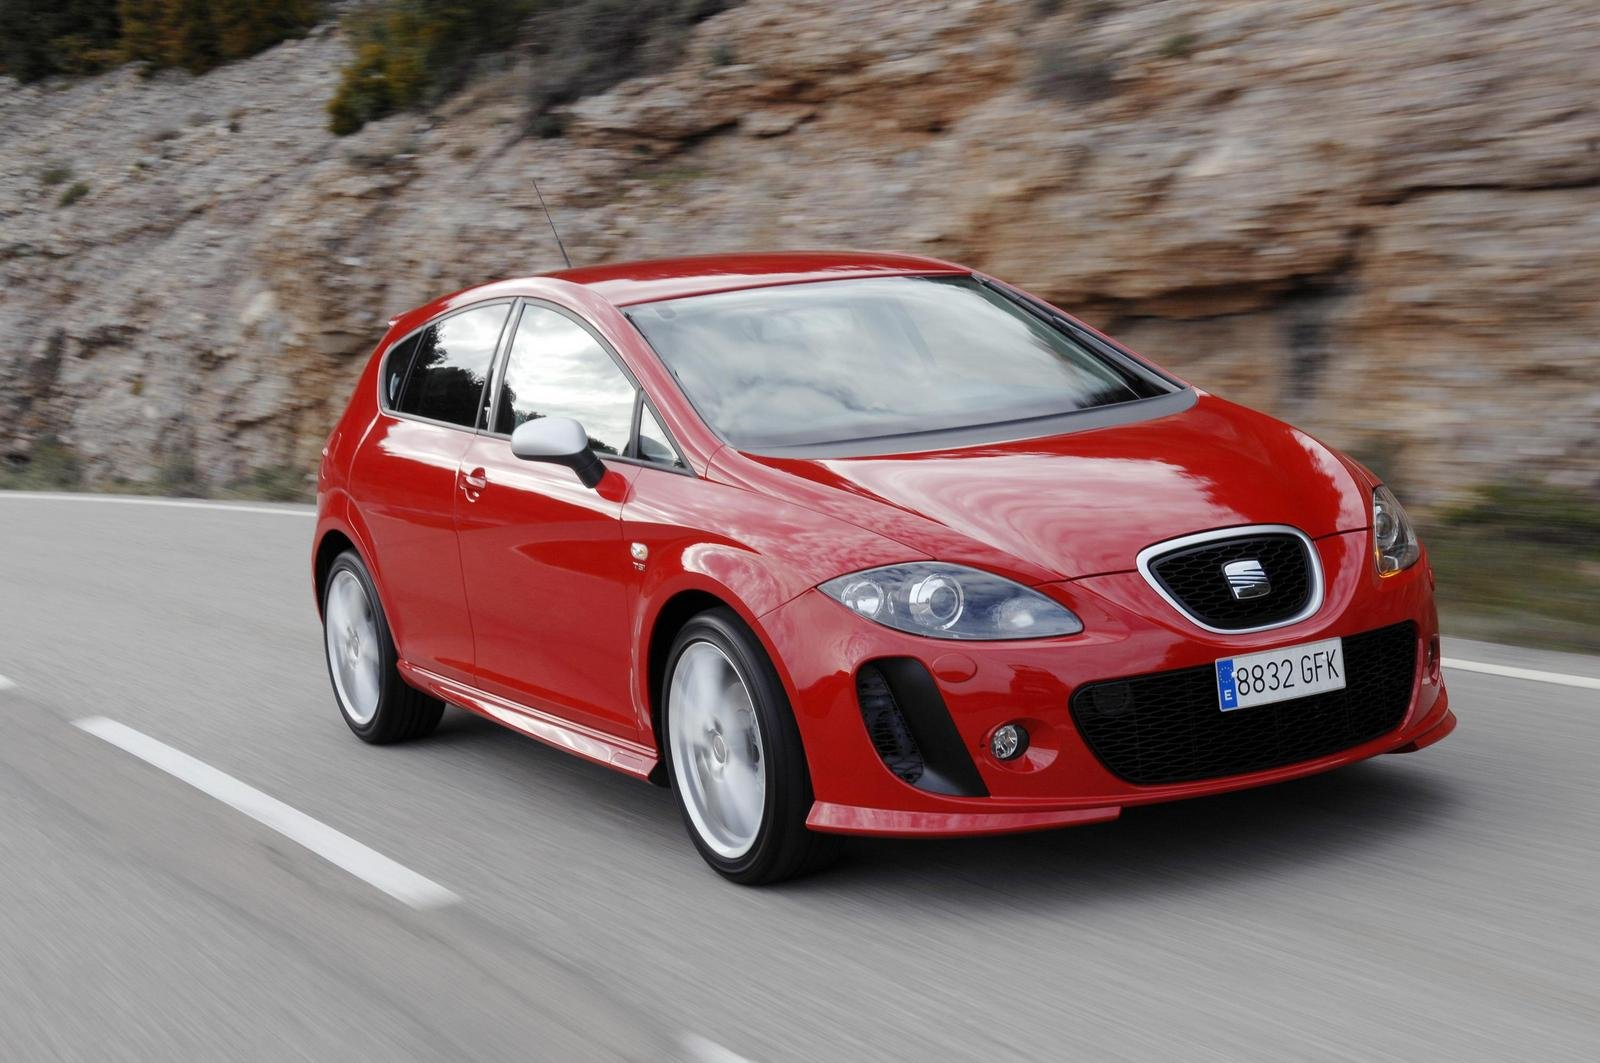 2009 seat leon linea r review gallery top speed. Black Bedroom Furniture Sets. Home Design Ideas